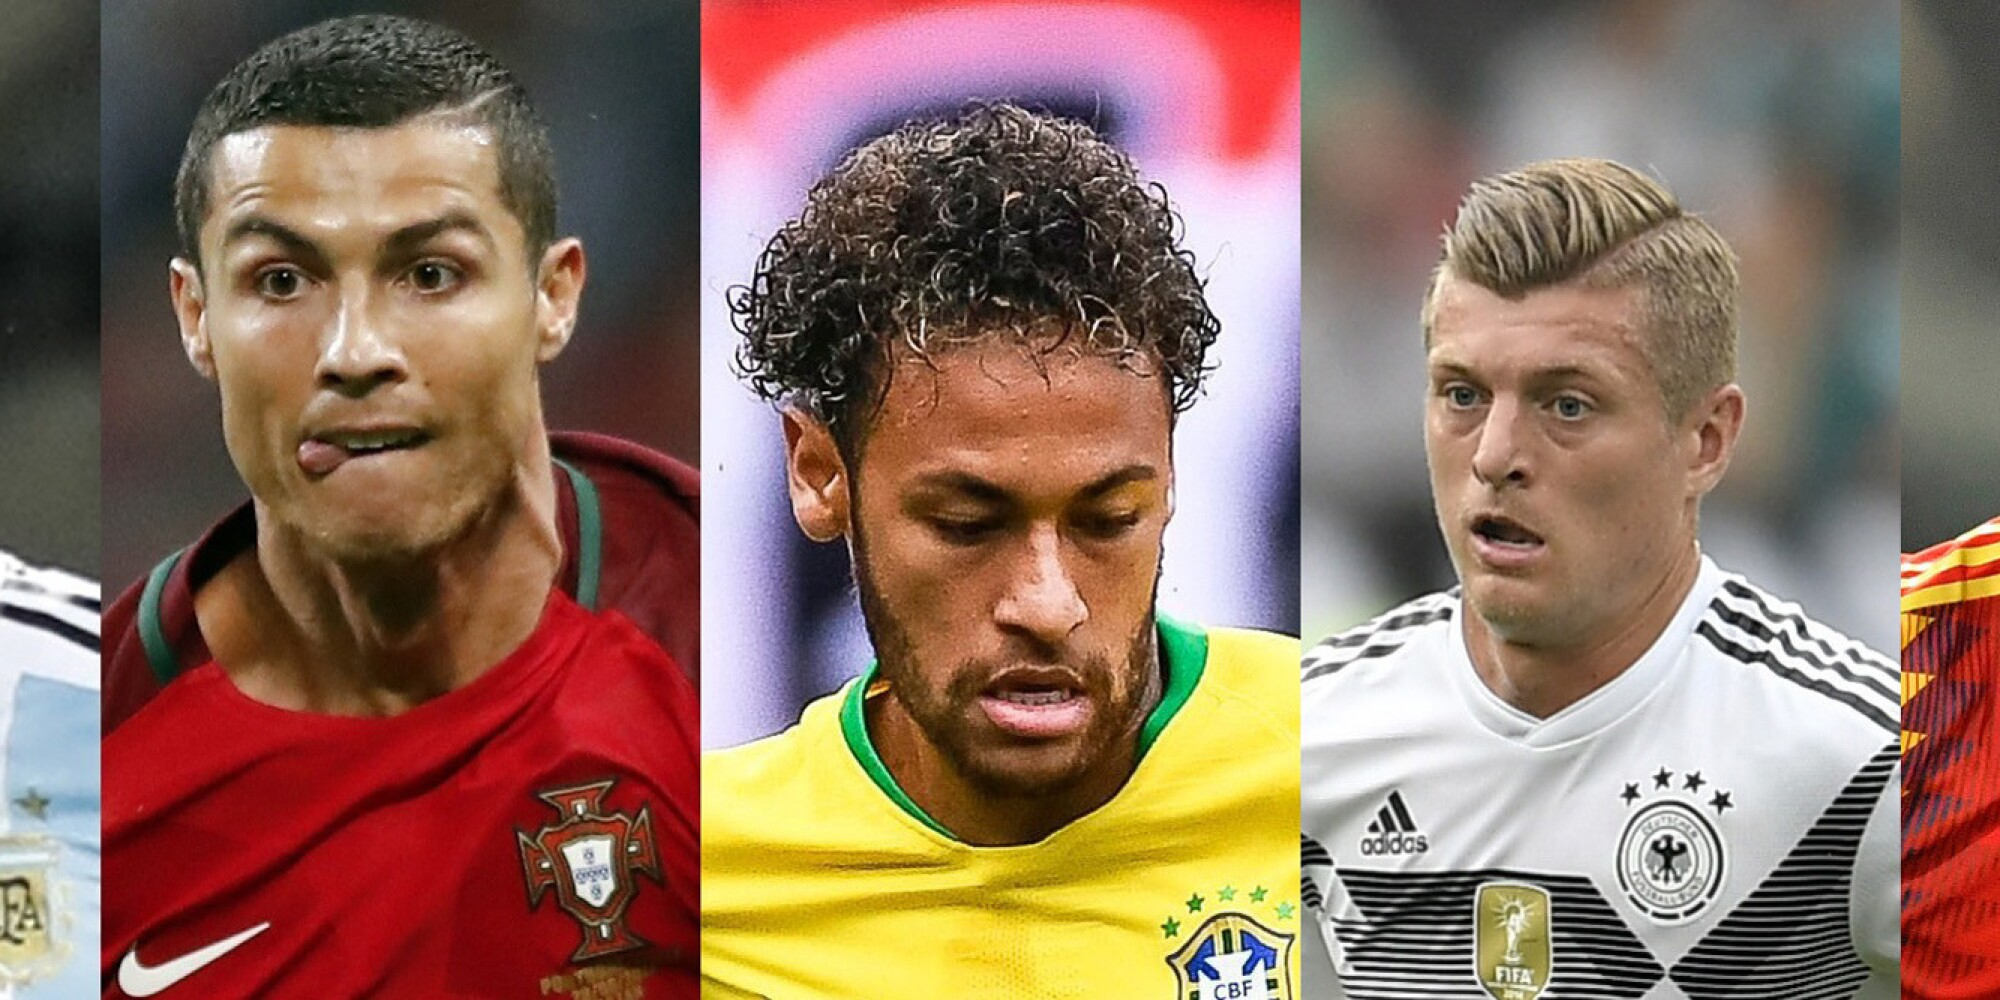 Complete coverage of the 2018 World Cup